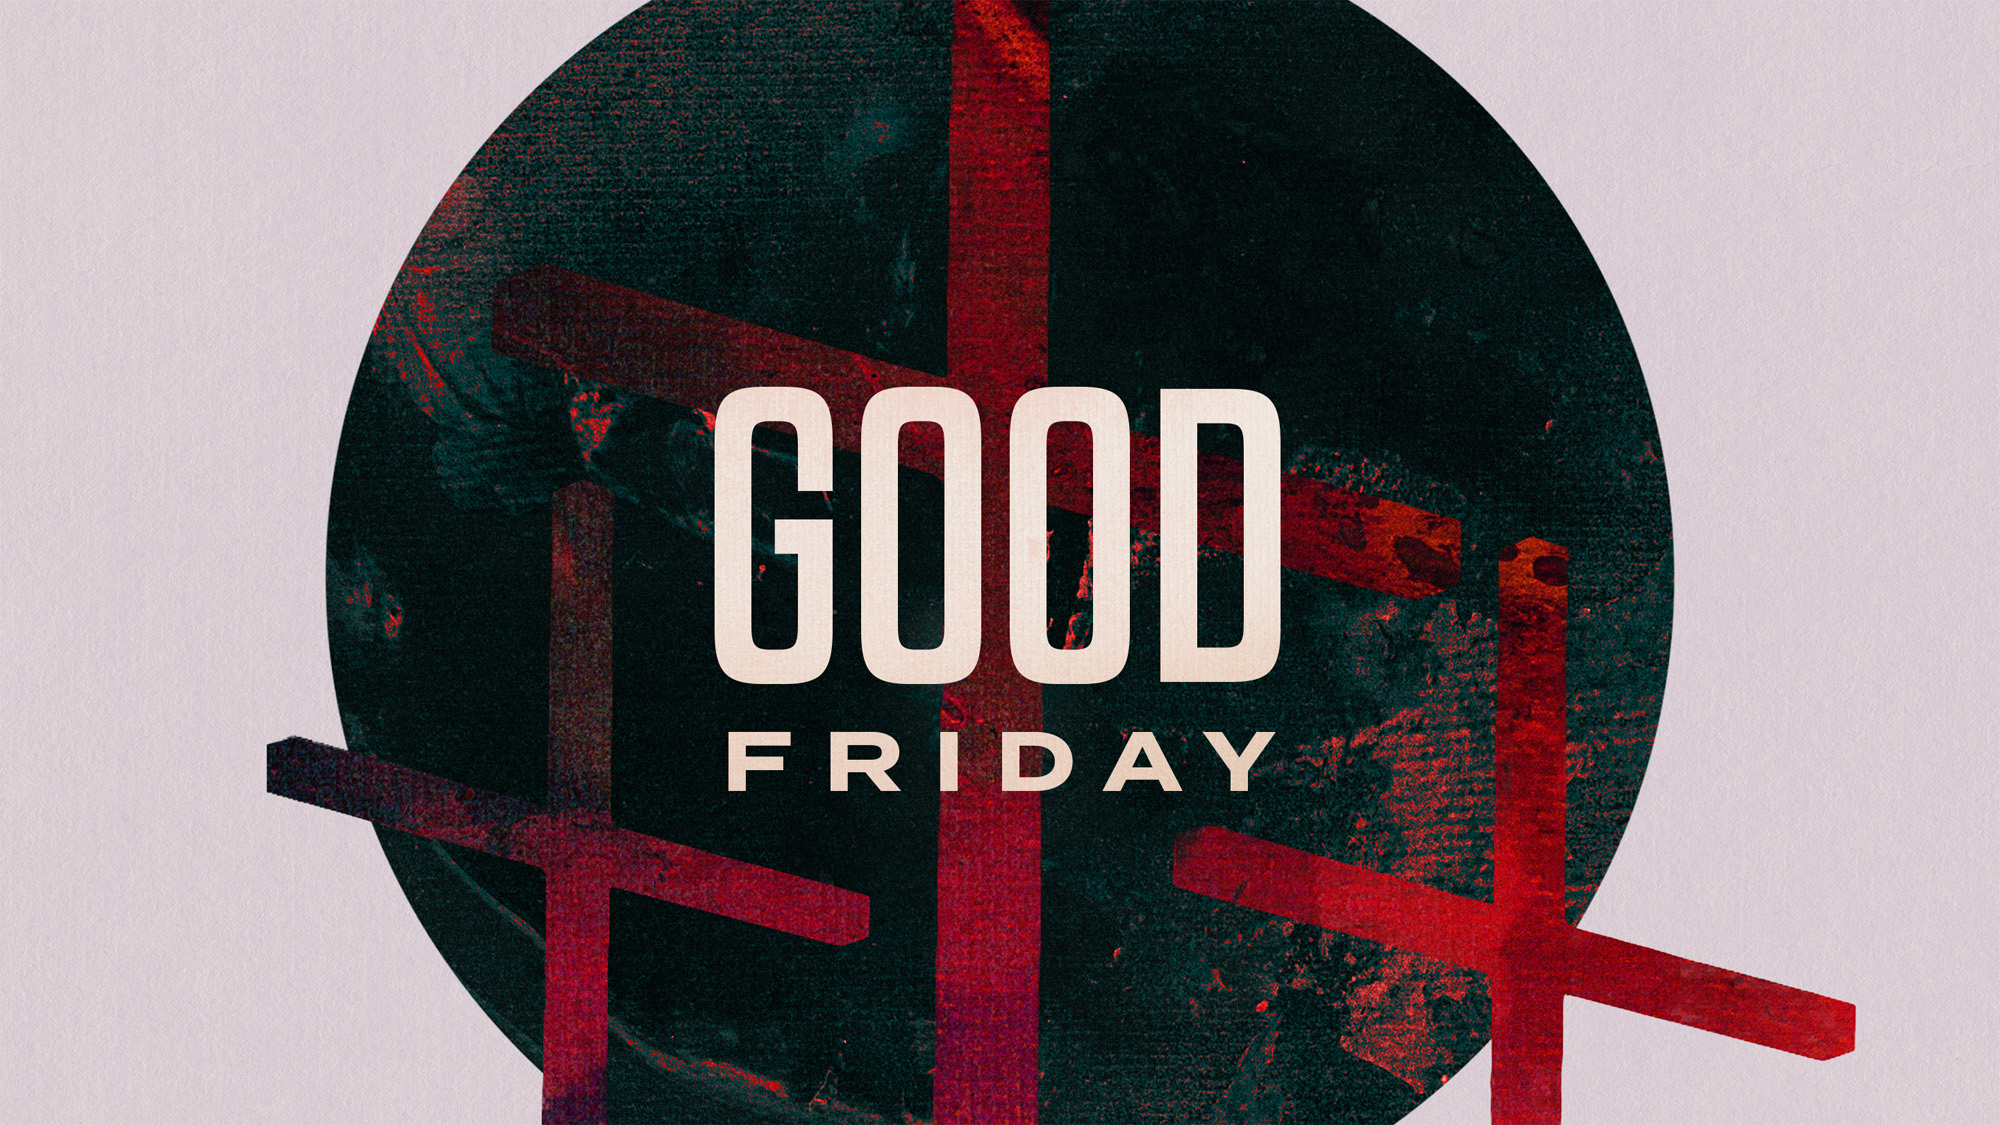 good friday title 1 wide 16x9